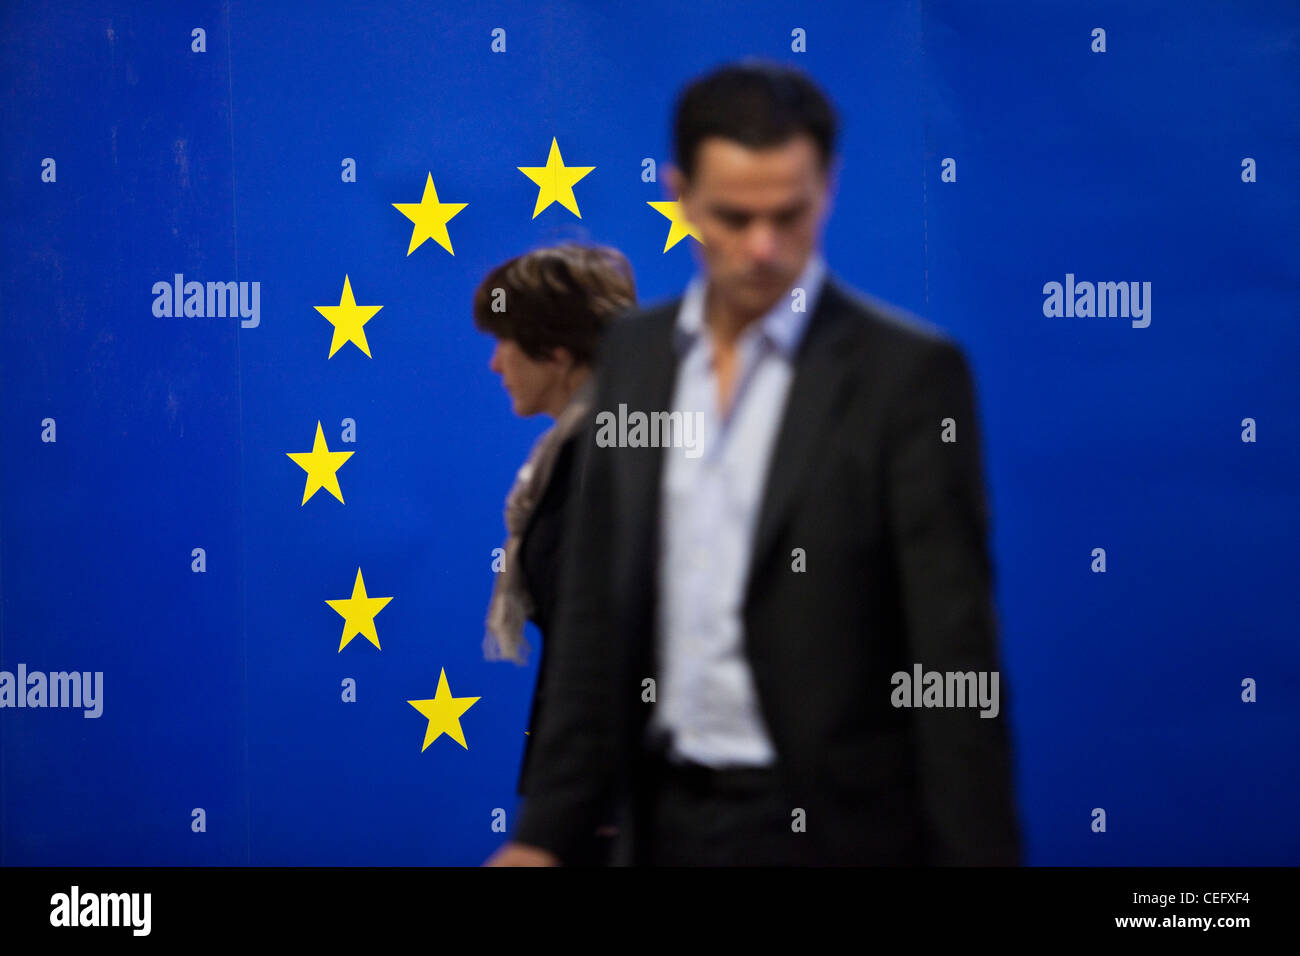 European Union flag and people - Stock Image